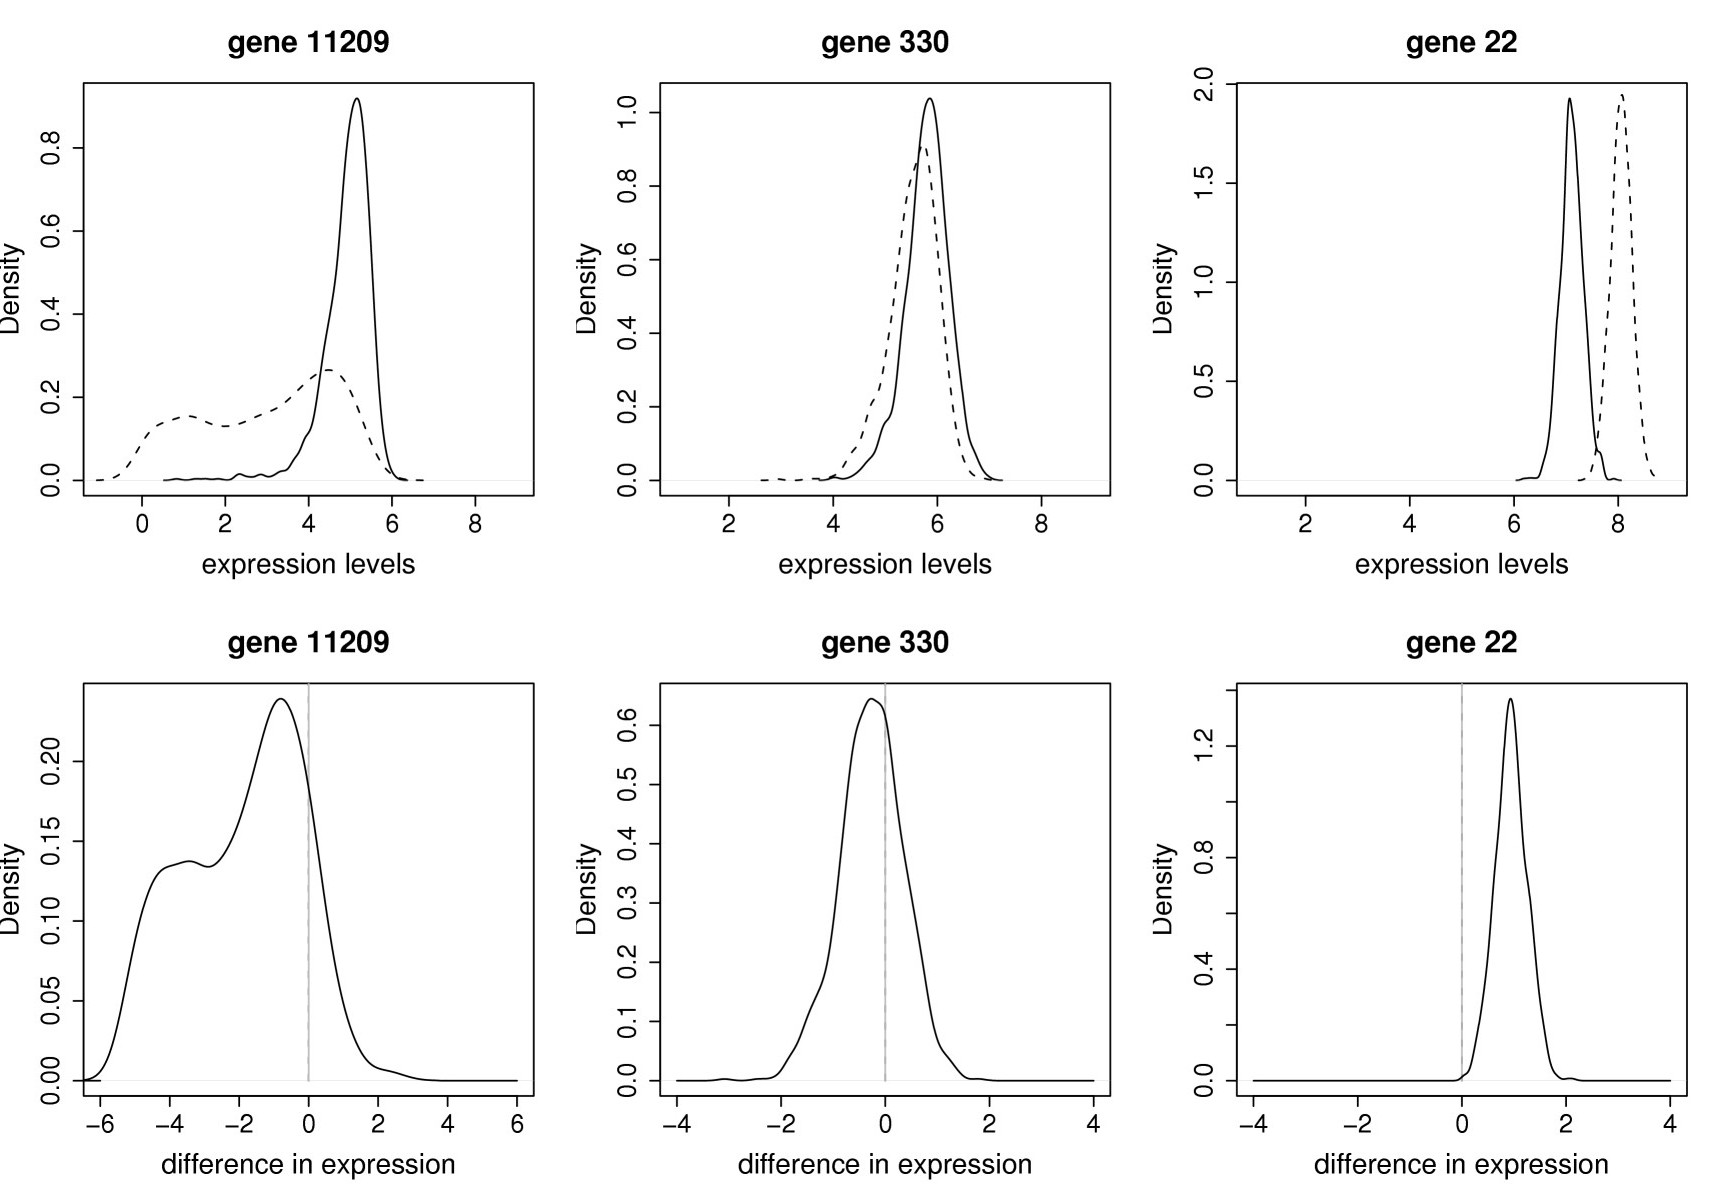 http://static-content.springer.com/image/art%3A10.1186%2F1471-2105-7-353/MediaObjects/12859_2006_Article_1092_Fig1_HTML.jpg